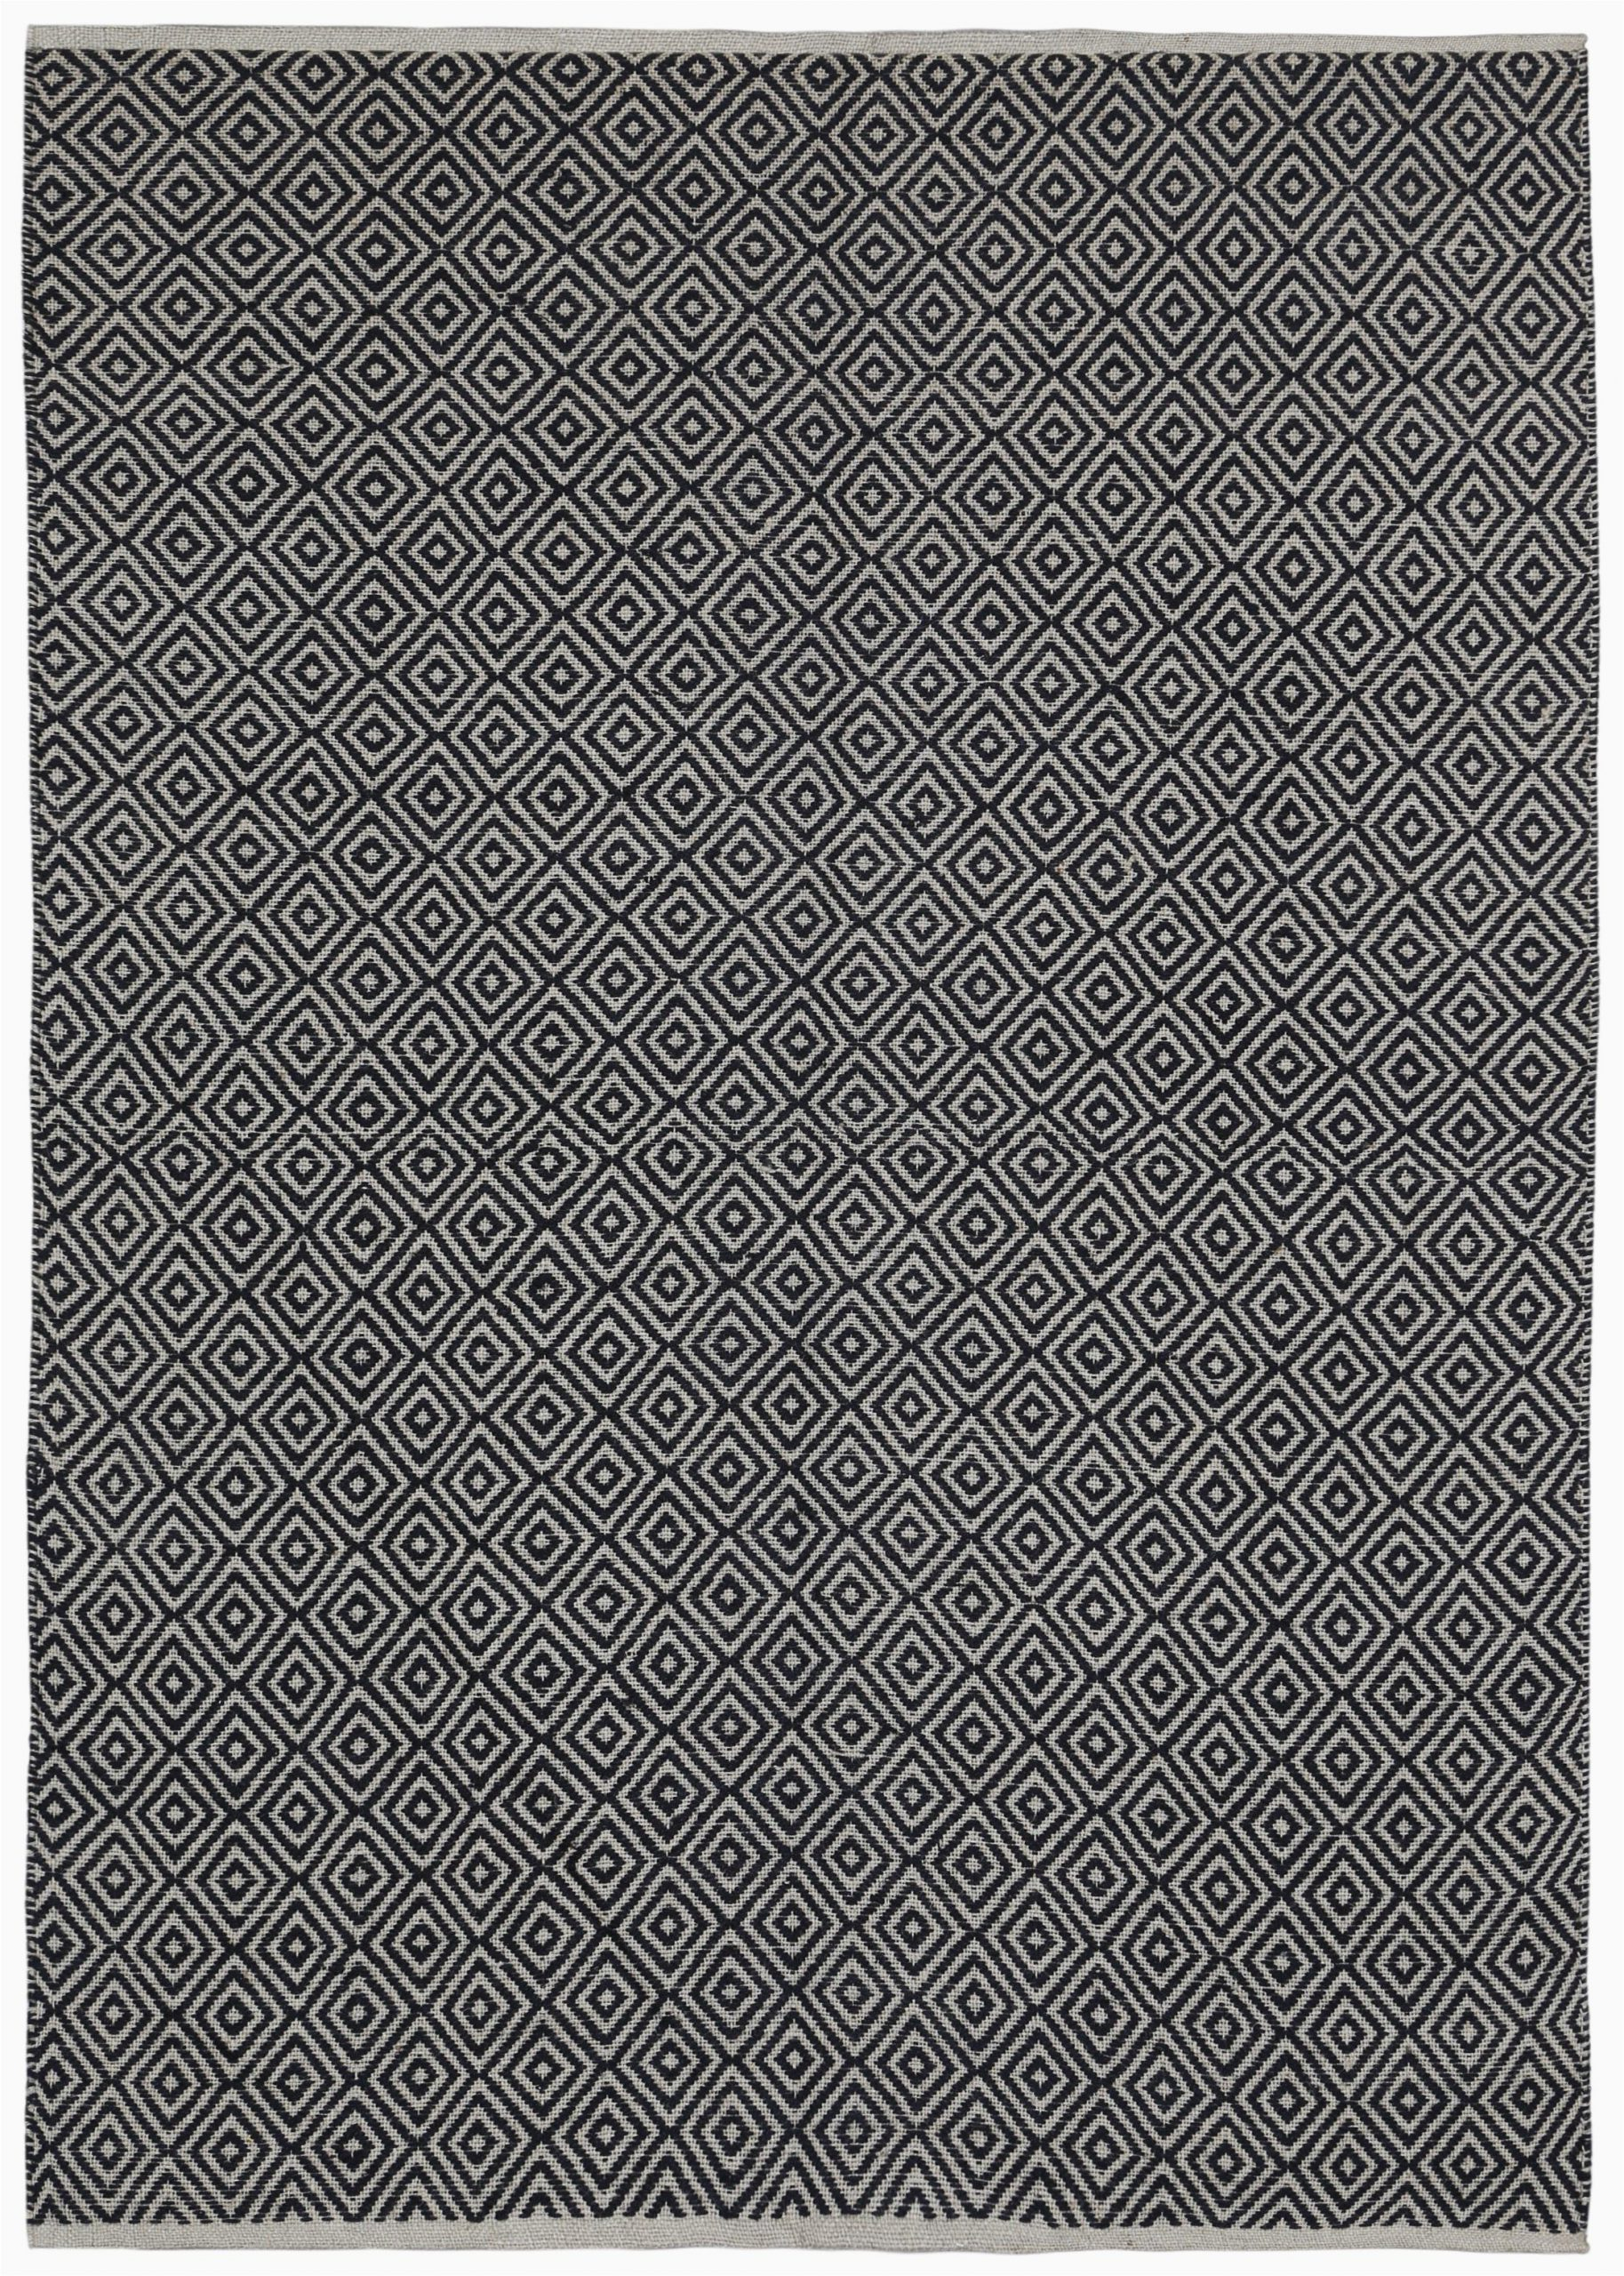 Black and White Woven area Rug Synthia Hand Woven Black area Rug